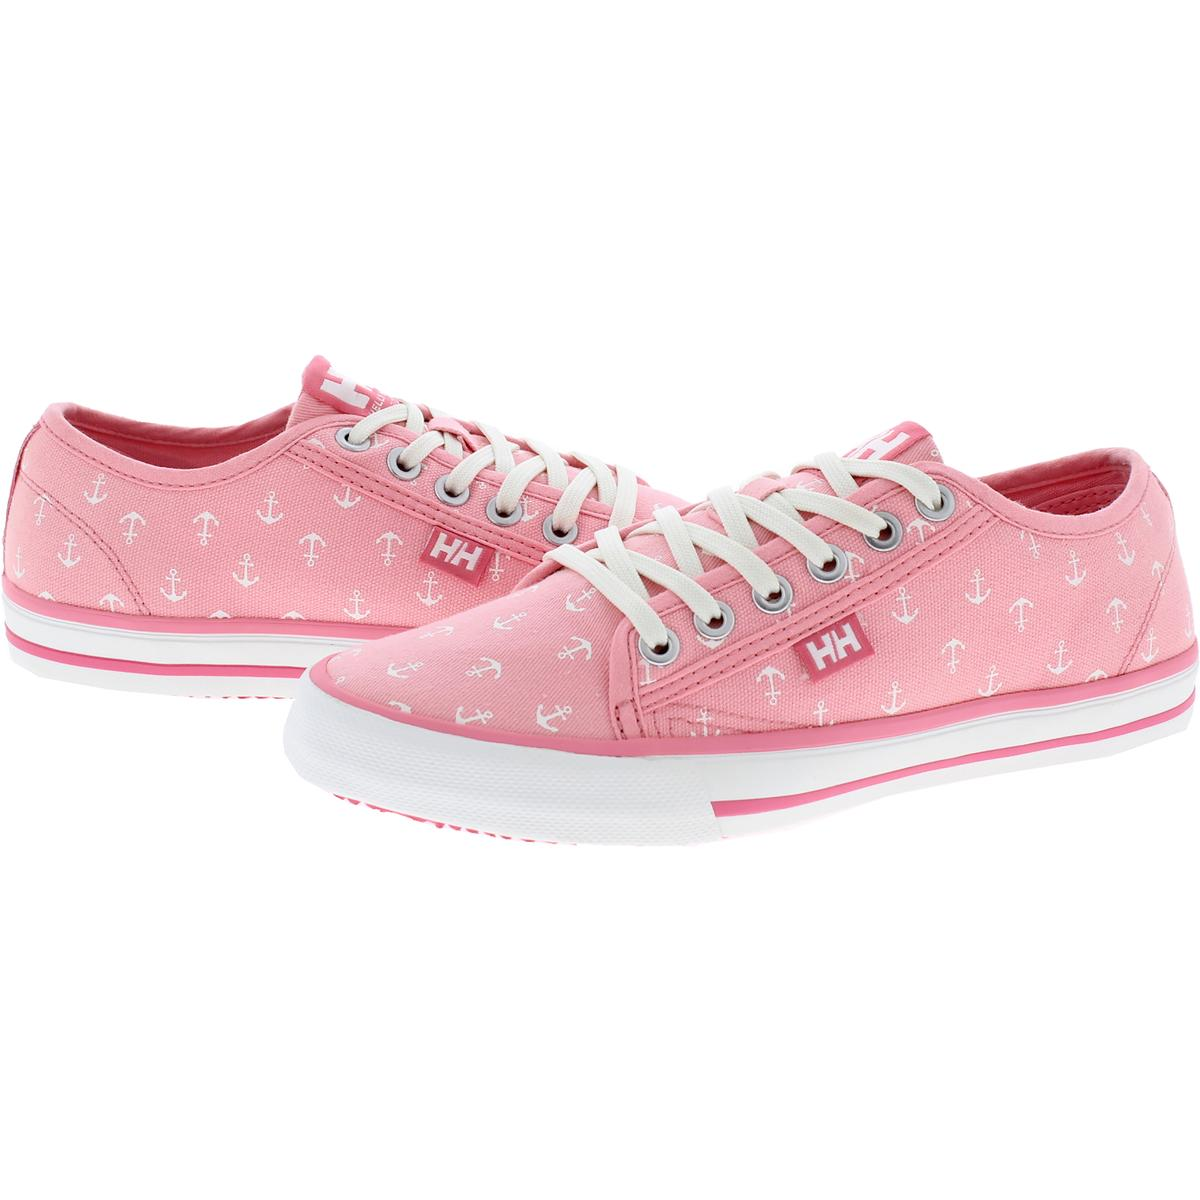 thumbnail 6 - Helly-Hansen-Womens-Fjord-V2-Lifestyle-Trainers-Fashion-Sneakers-Shoes-BHFO-9905